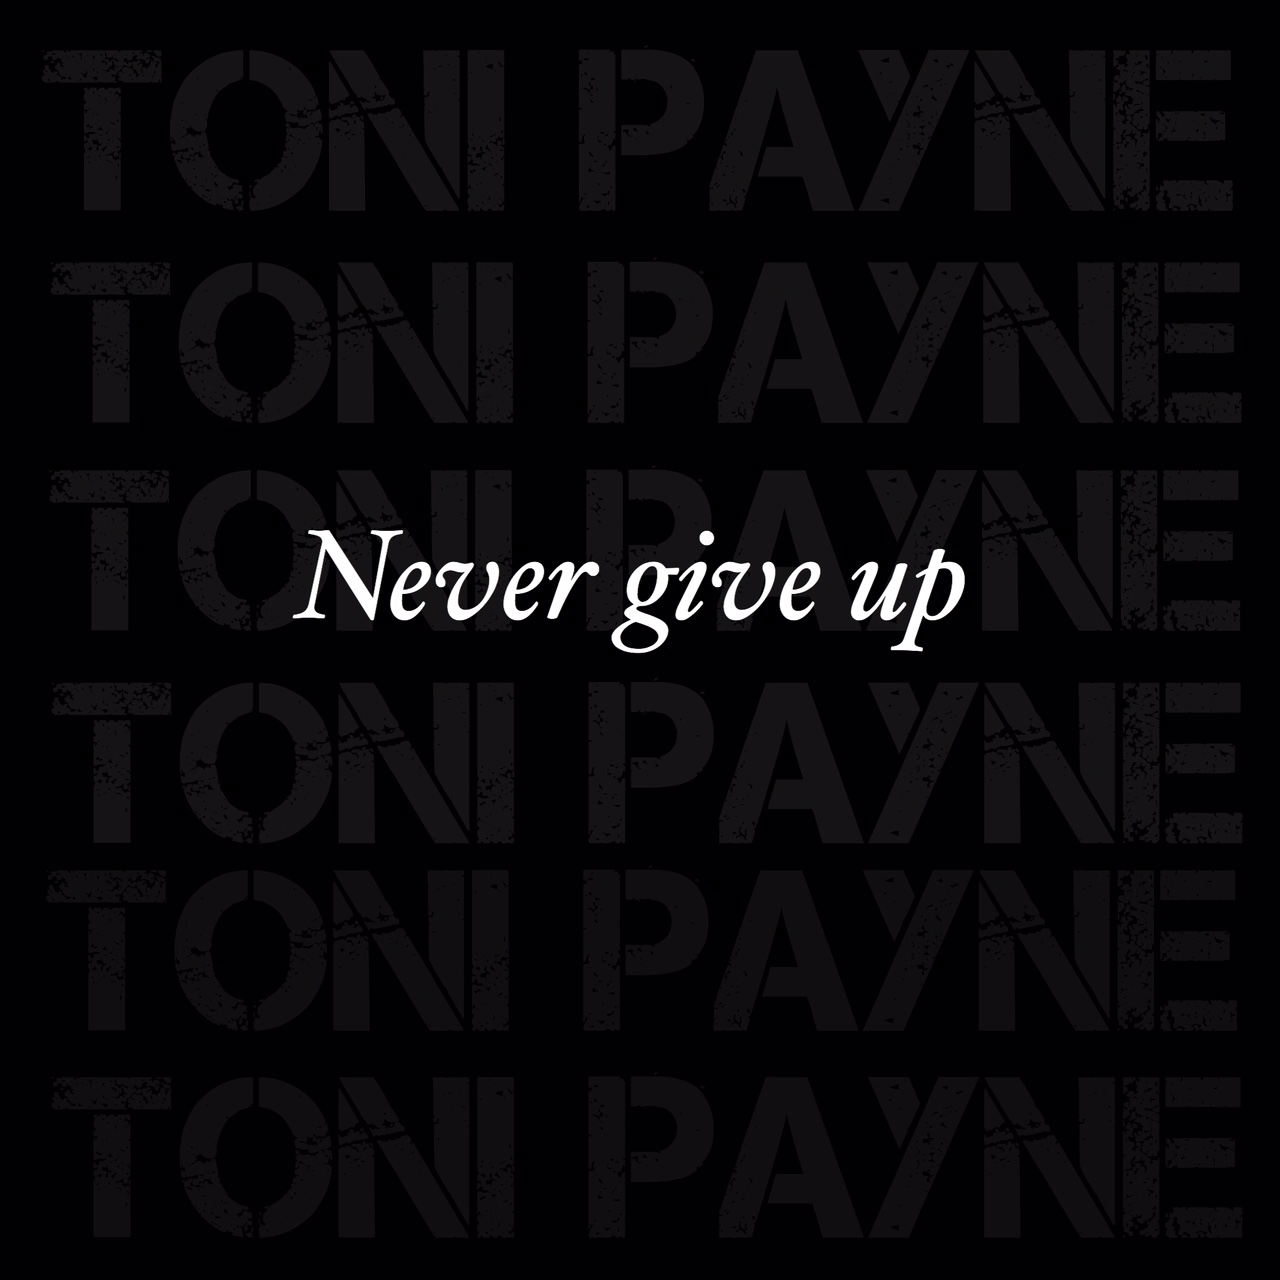 Never Give Up On Life Quotes Quote About Perseverance.never Give Up  Toni Payne  Official